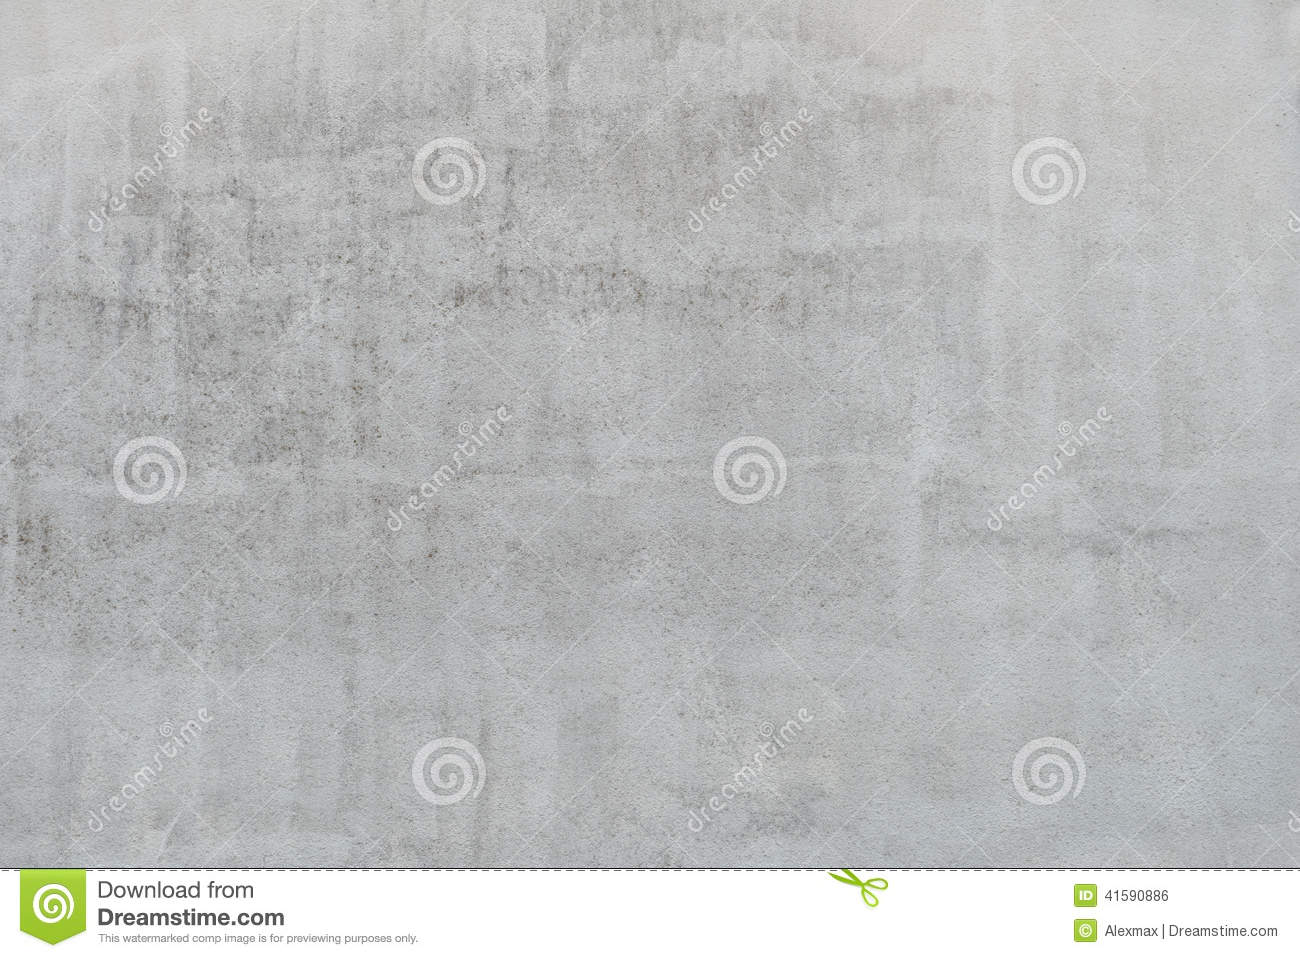 Gray stucco wall texture background